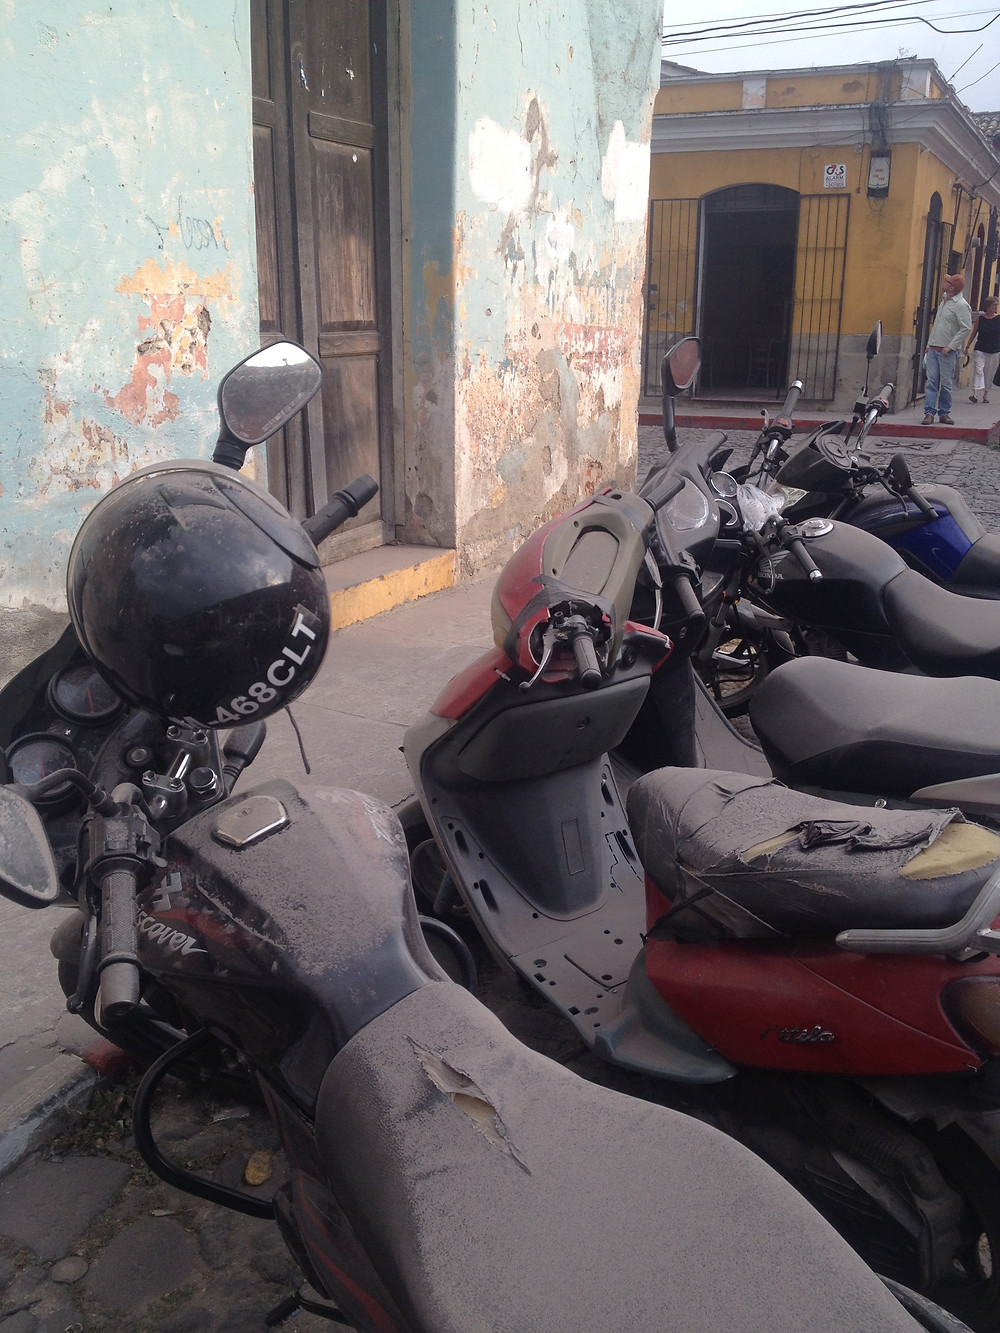 volcanic ash covering the streets and motorbikes of Antigua, Guatemala (Photo by John Early)